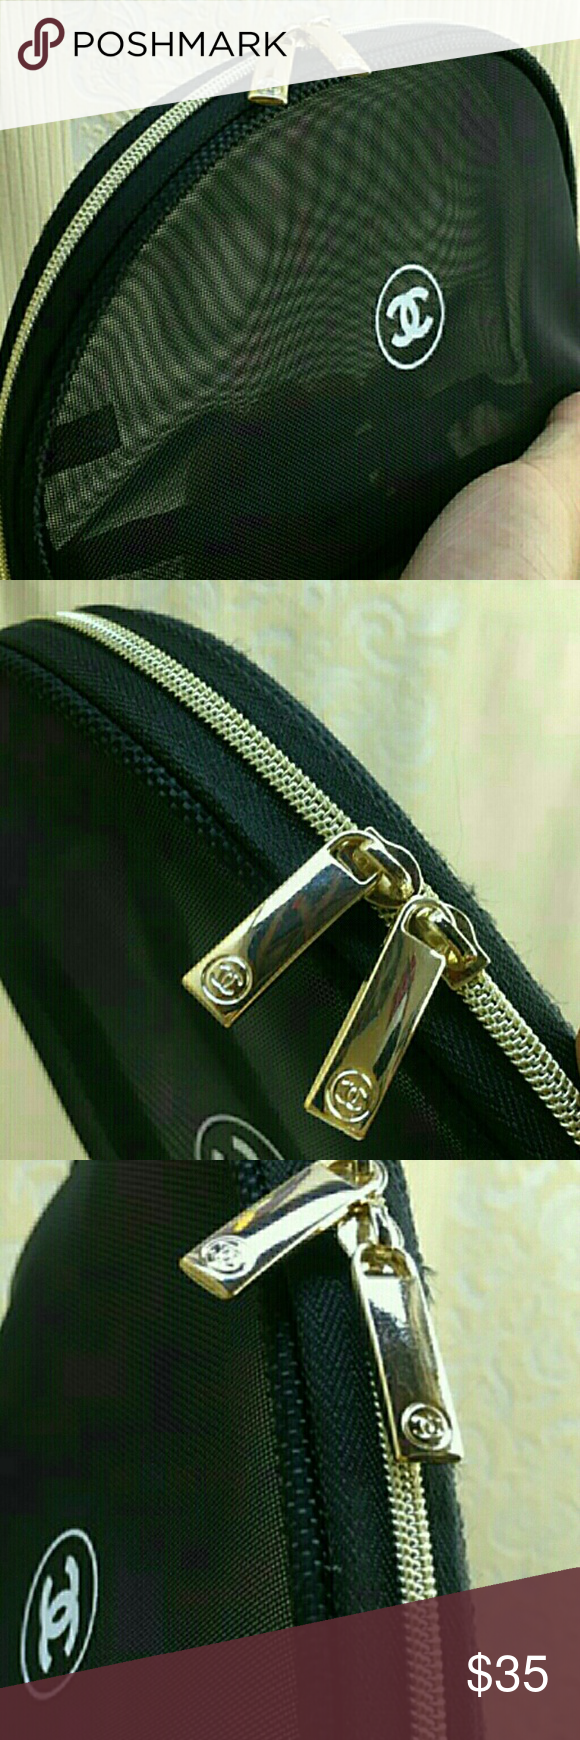 chanel vip cosmetic bag New, gold hardware. double zipper, mesh fabric.  From chanel parfums, not chanel boutique。 chanel Bags Cosmetic Bags   Cases d18510a0e1